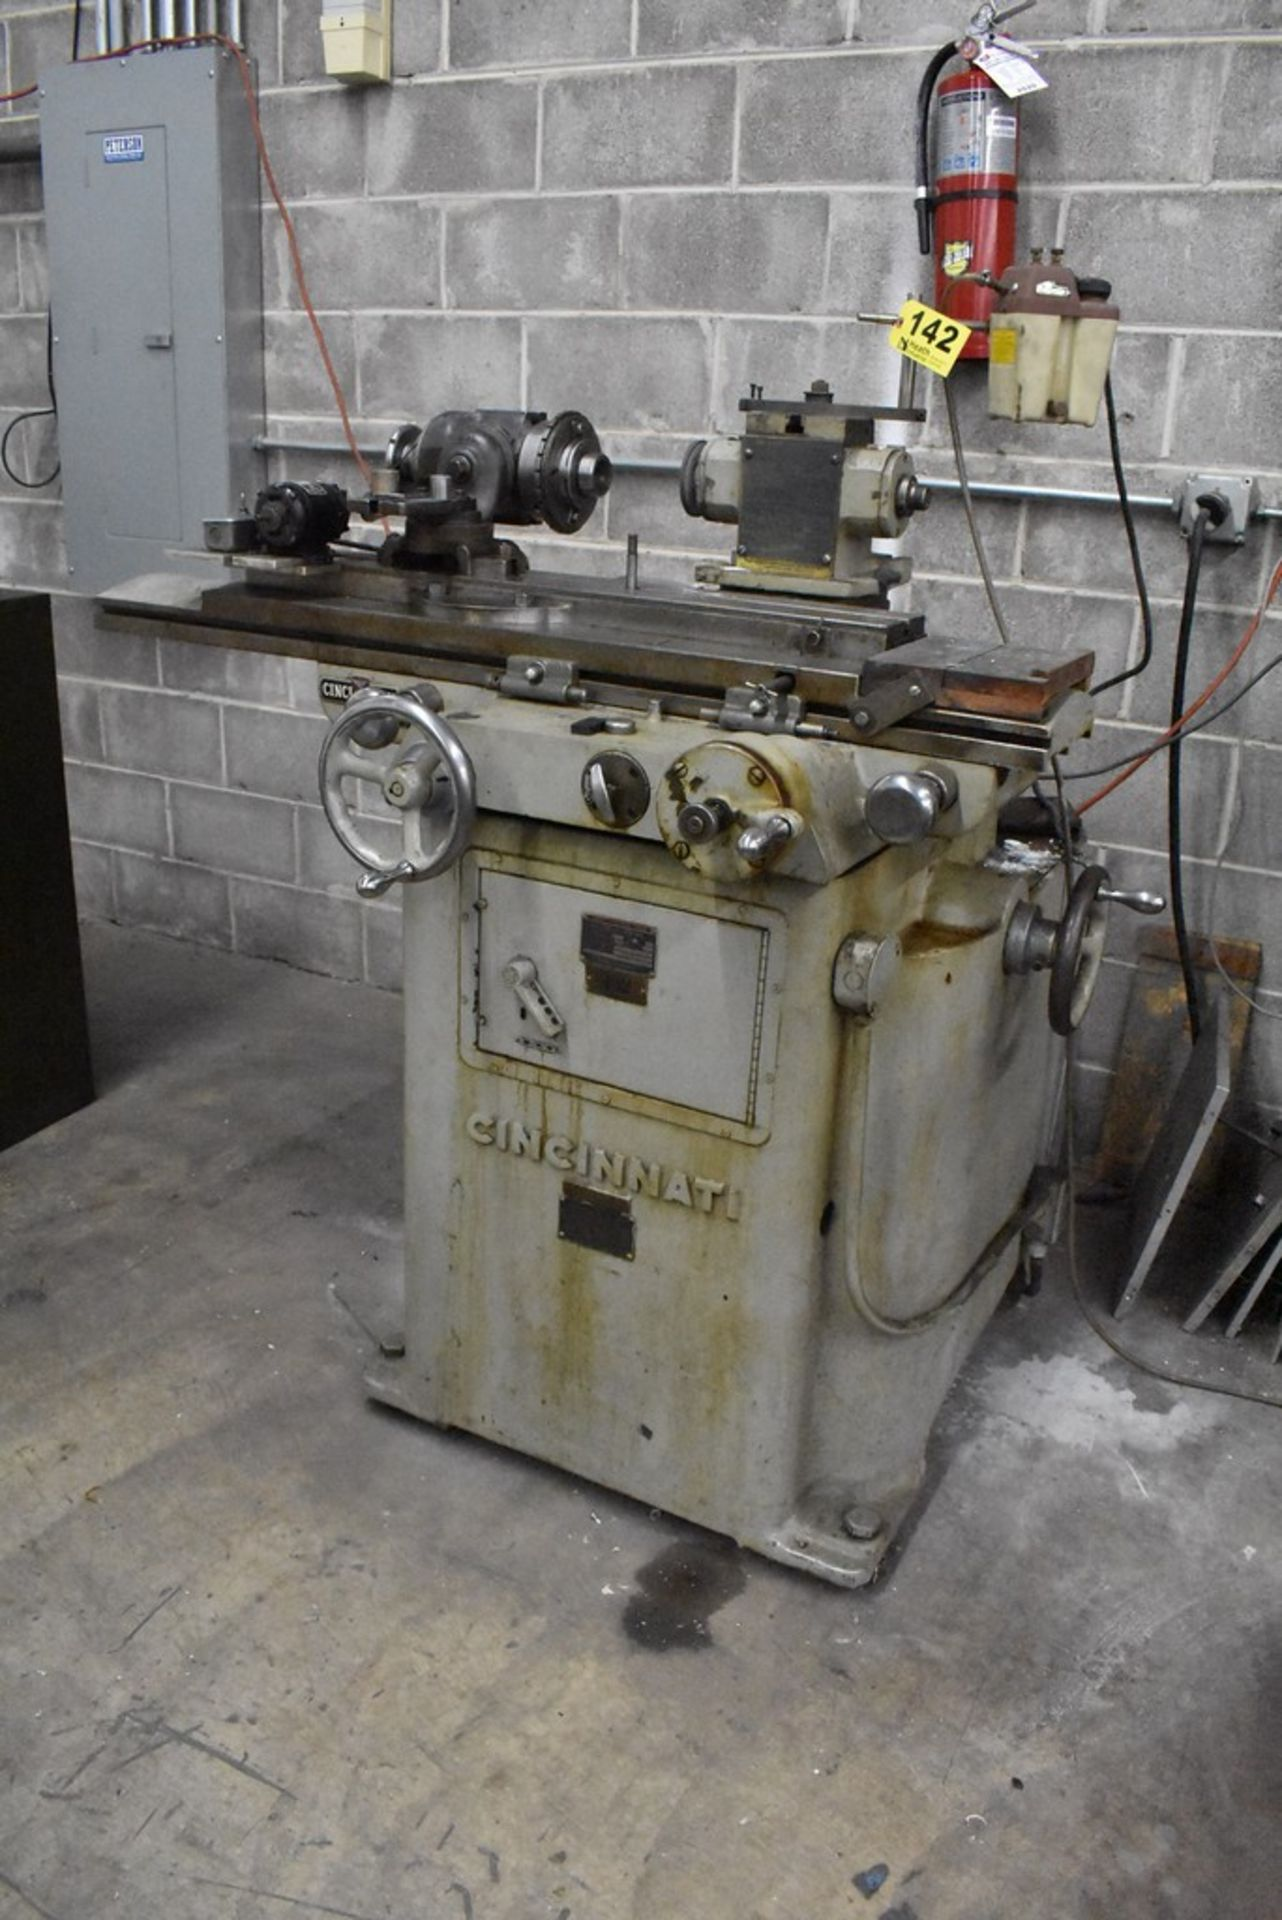 CINCINNATI NO. 2 TOOL AND CUTTER GRINDER, S/N 1D2T1Z-771, WITH MOTORIZED WORK HEAD - Image 2 of 14